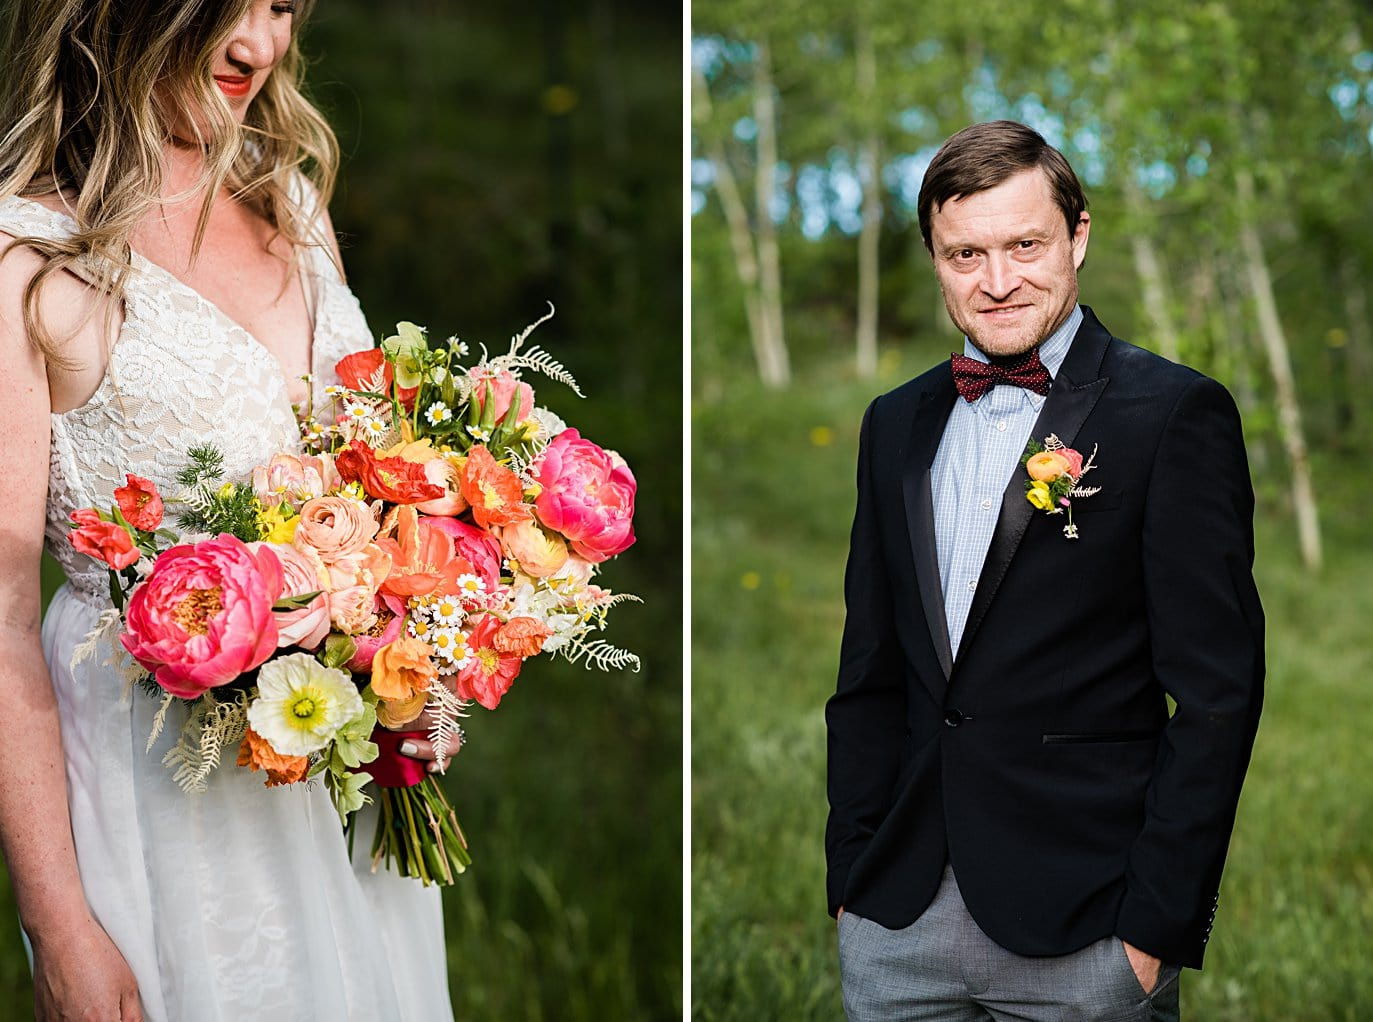 colorful and vibrant wedding bouquet at private Golden elopement by Boulder wedding photographer Jennie Crate